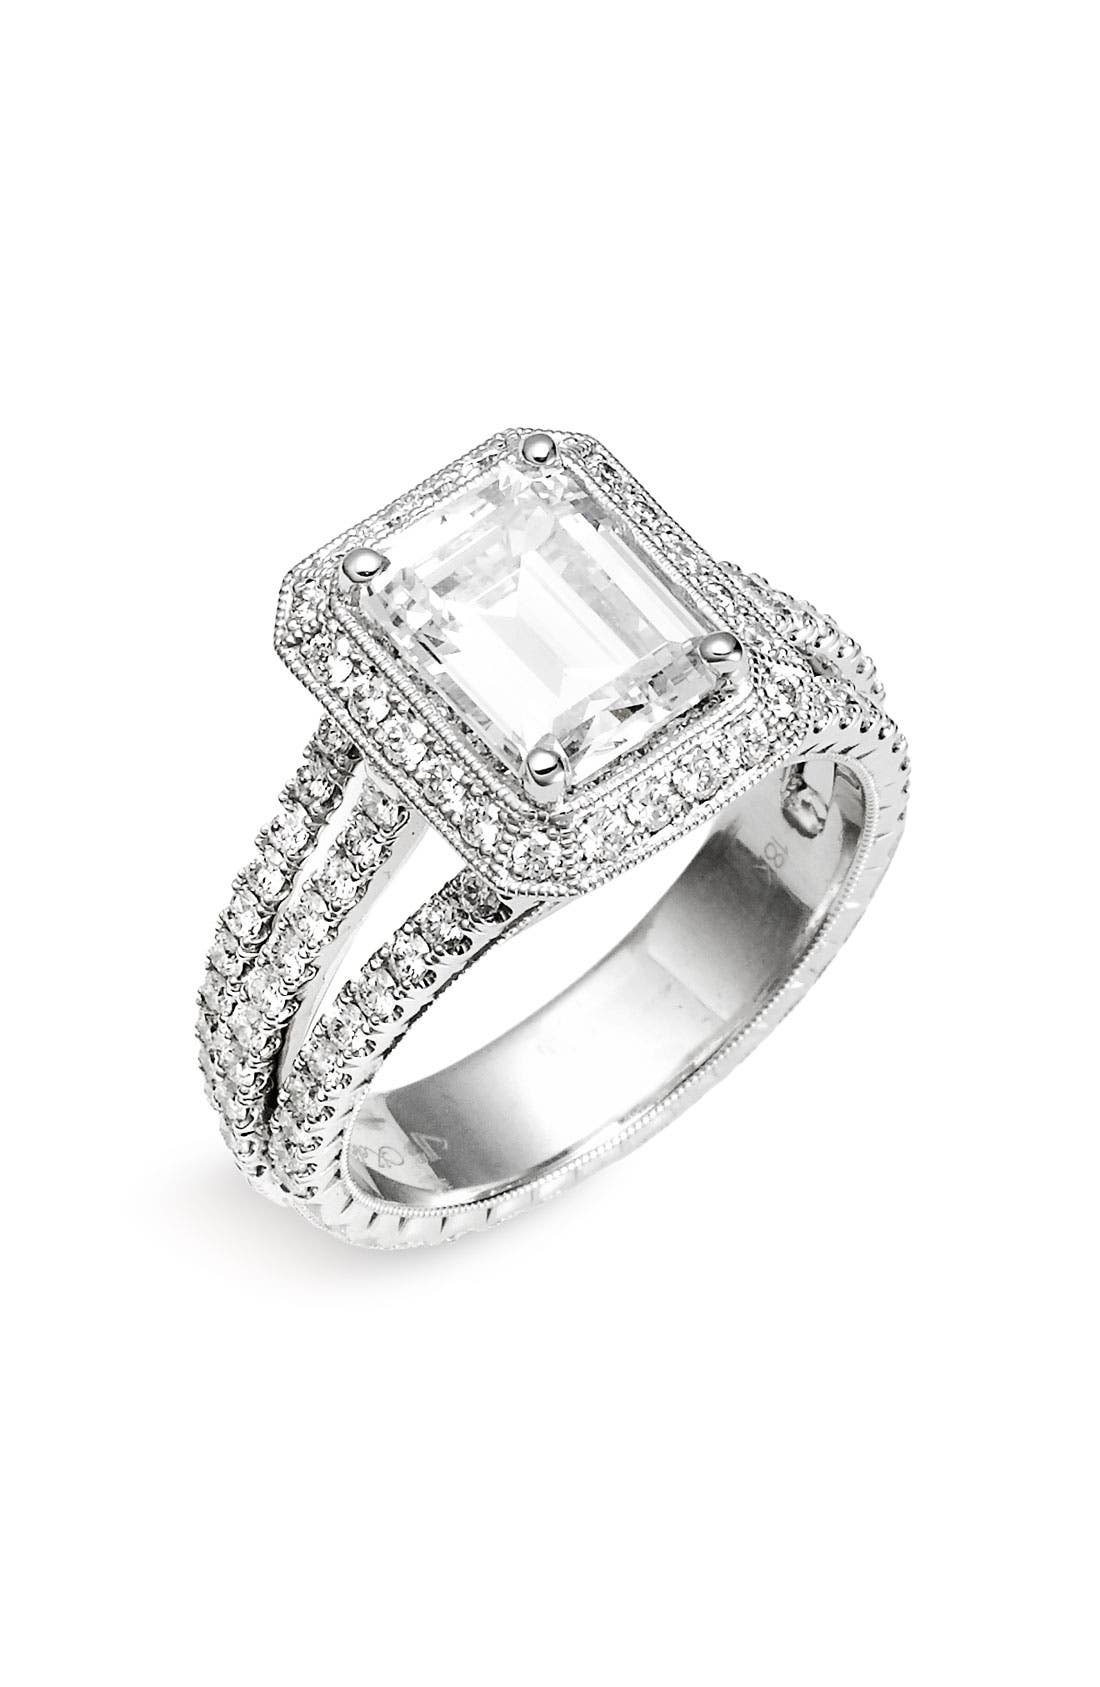 Main Image - Jack Kelége 'Romance' Emerald Cut Diamond Engagement Ring Setting